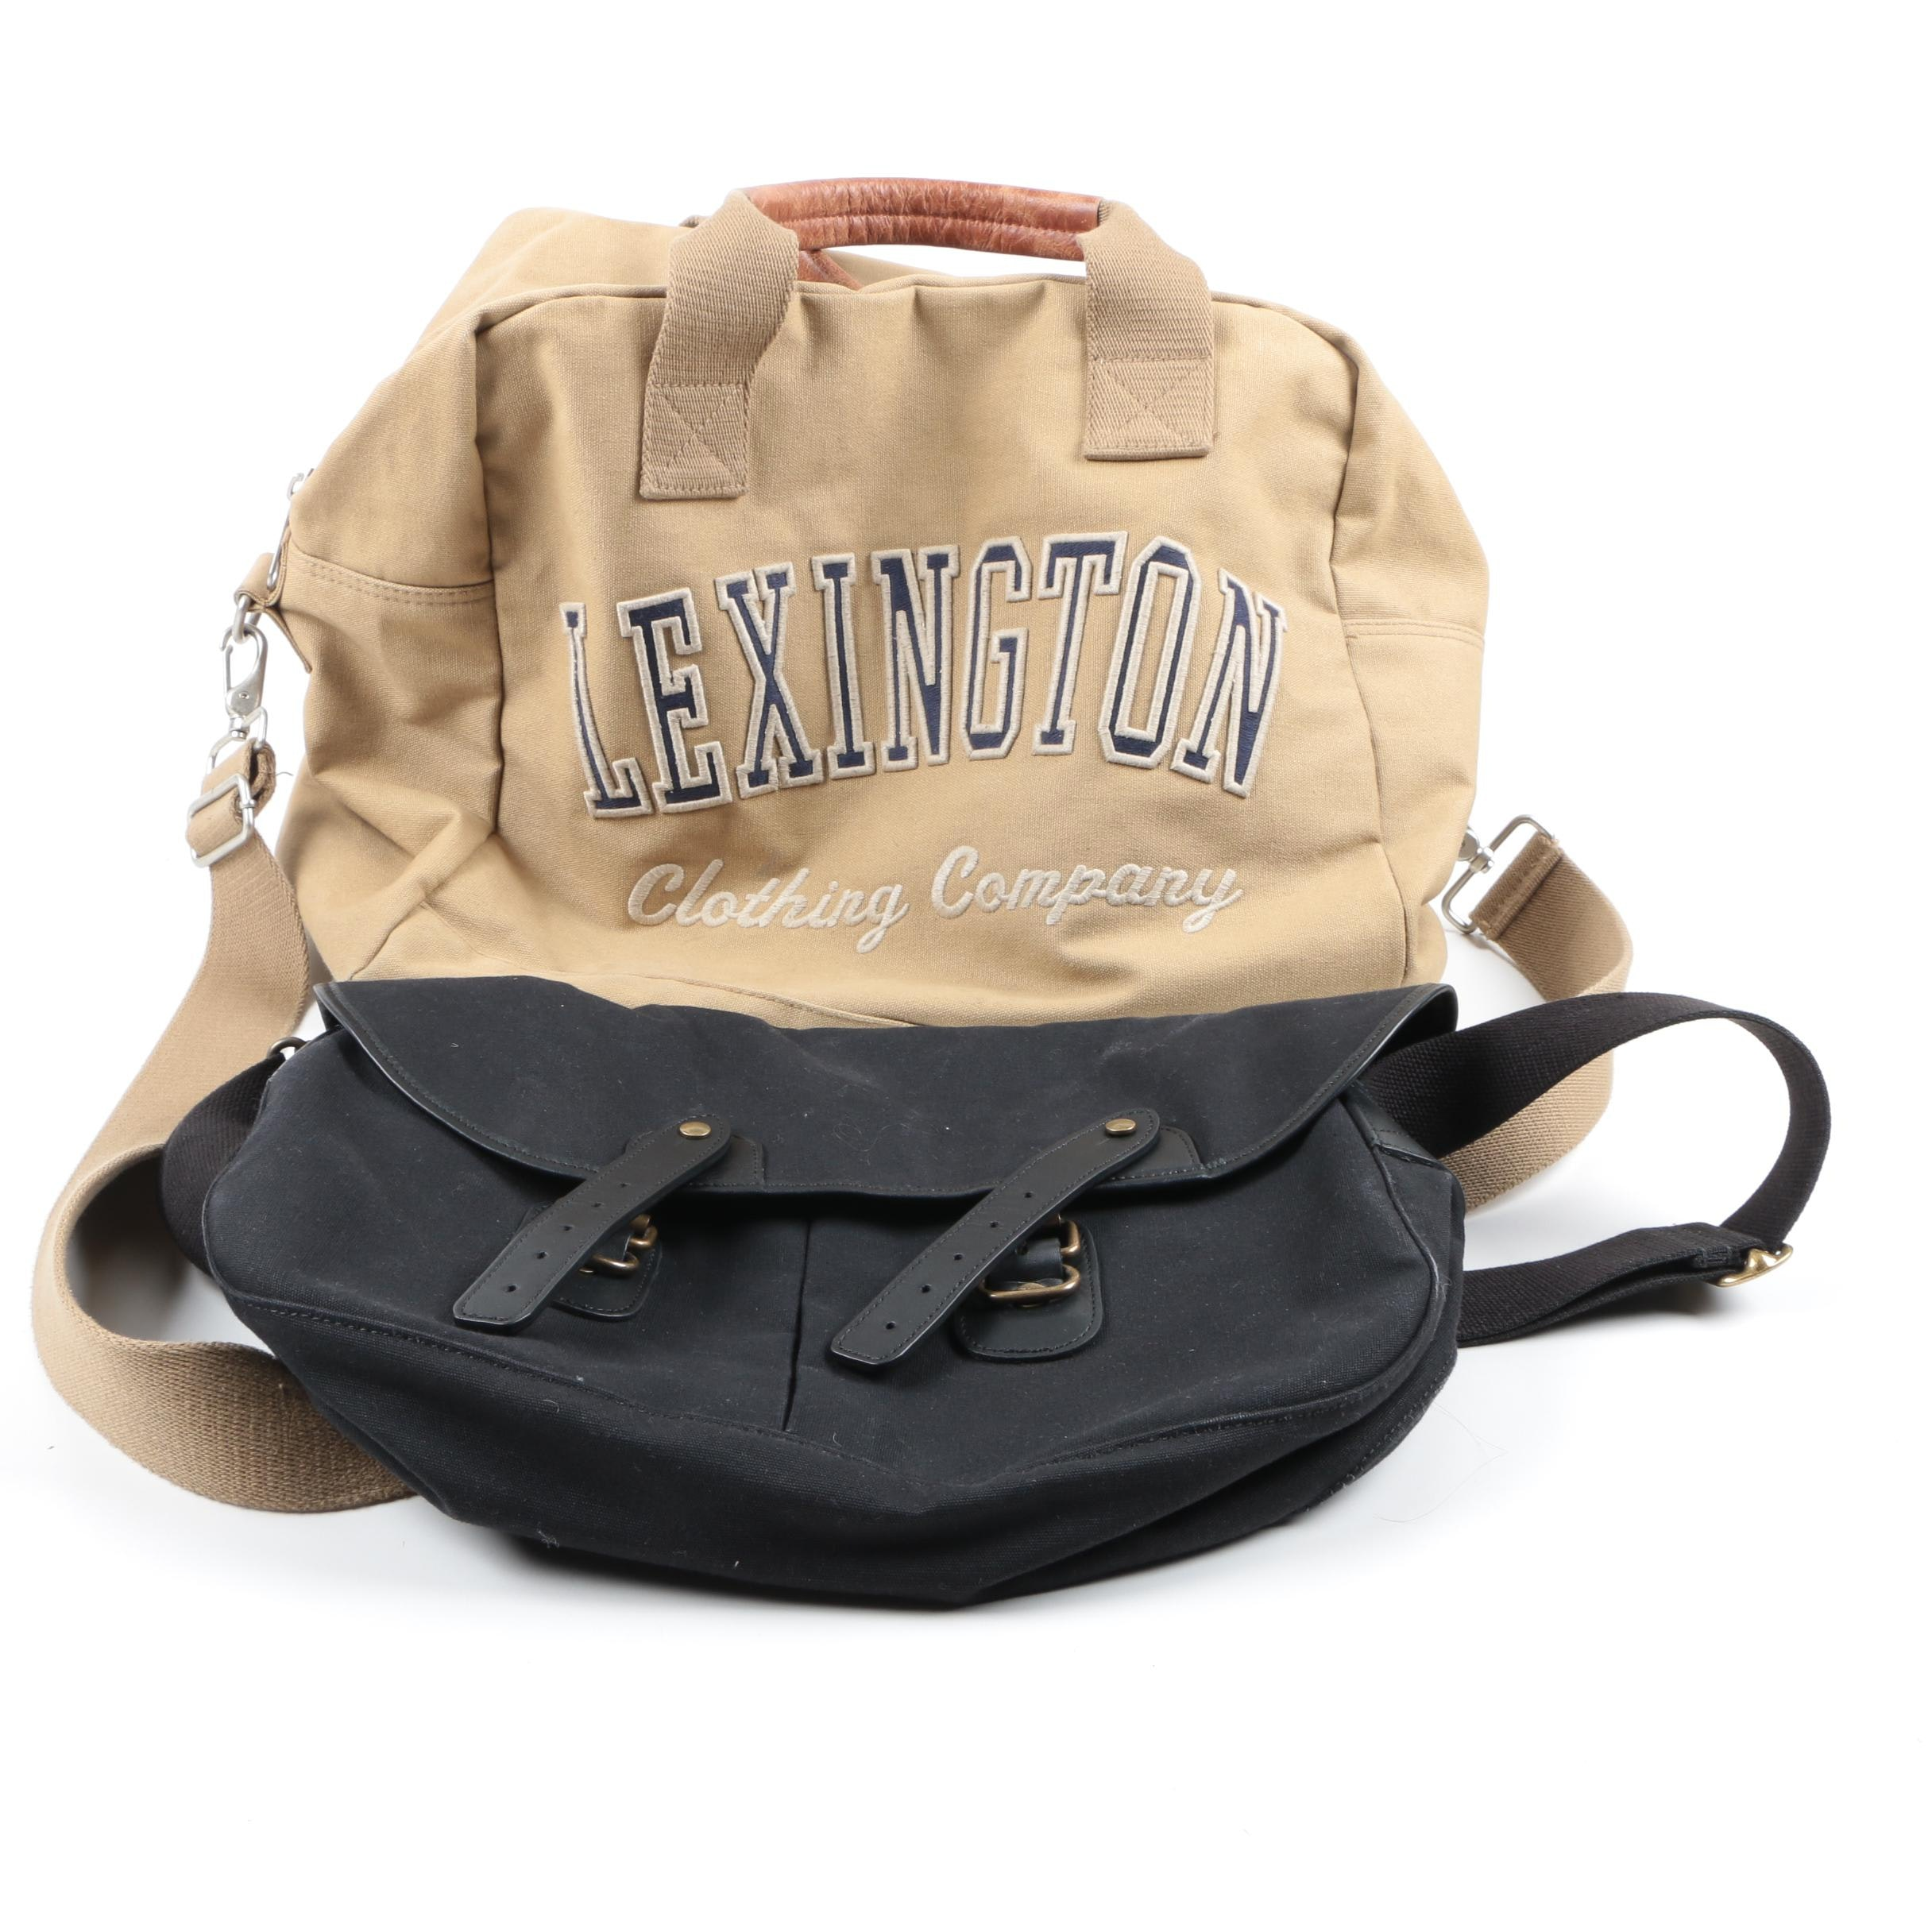 Pair of Canvas Bags Including Upla and Lexington Clothing Company